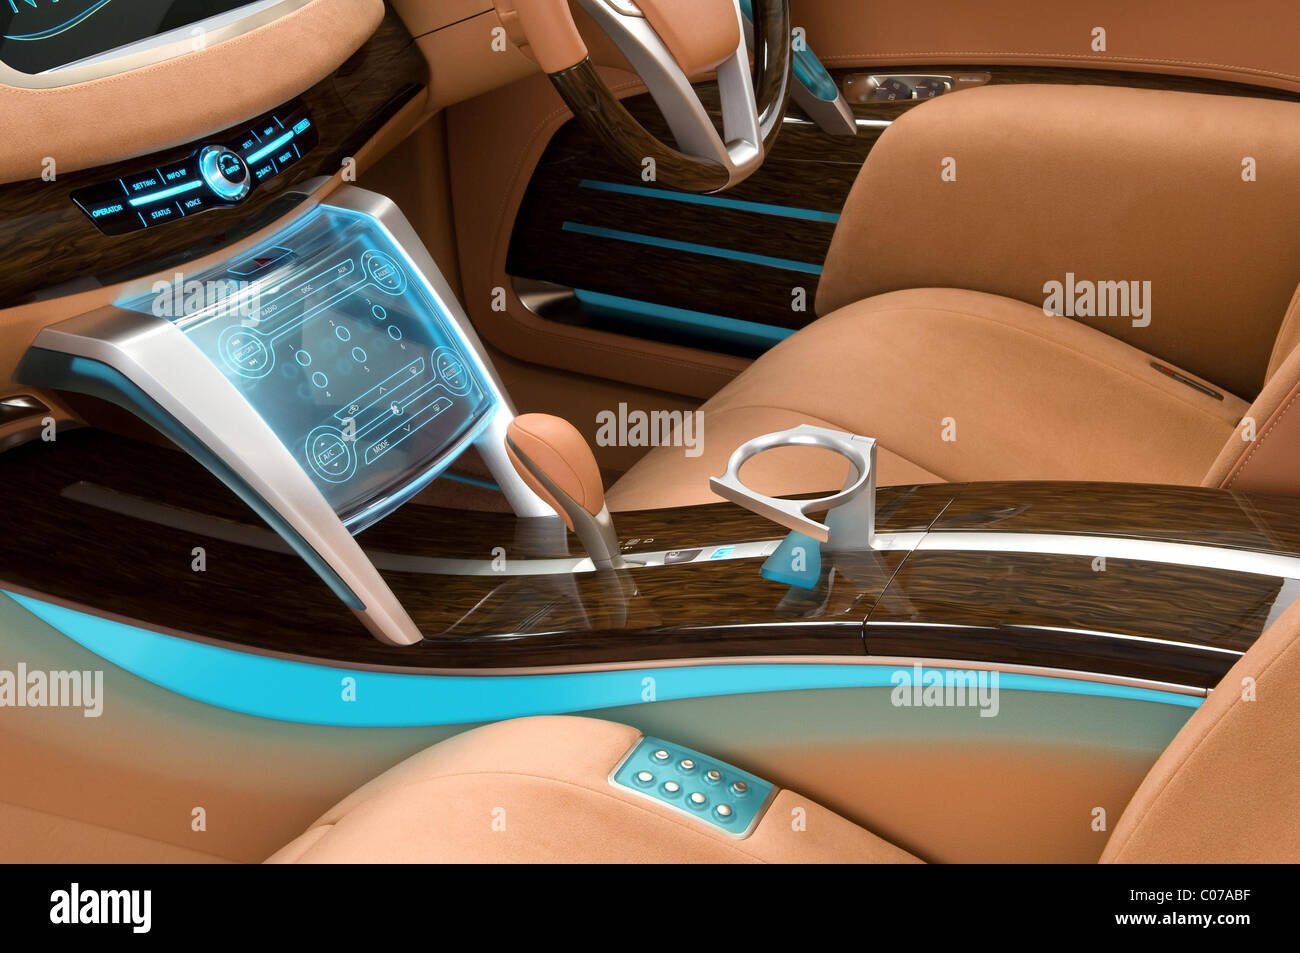 Nissan Intima Concept Nissan Will Present Four Show Vehicles That  Incorporate New And Exciting Ideas For